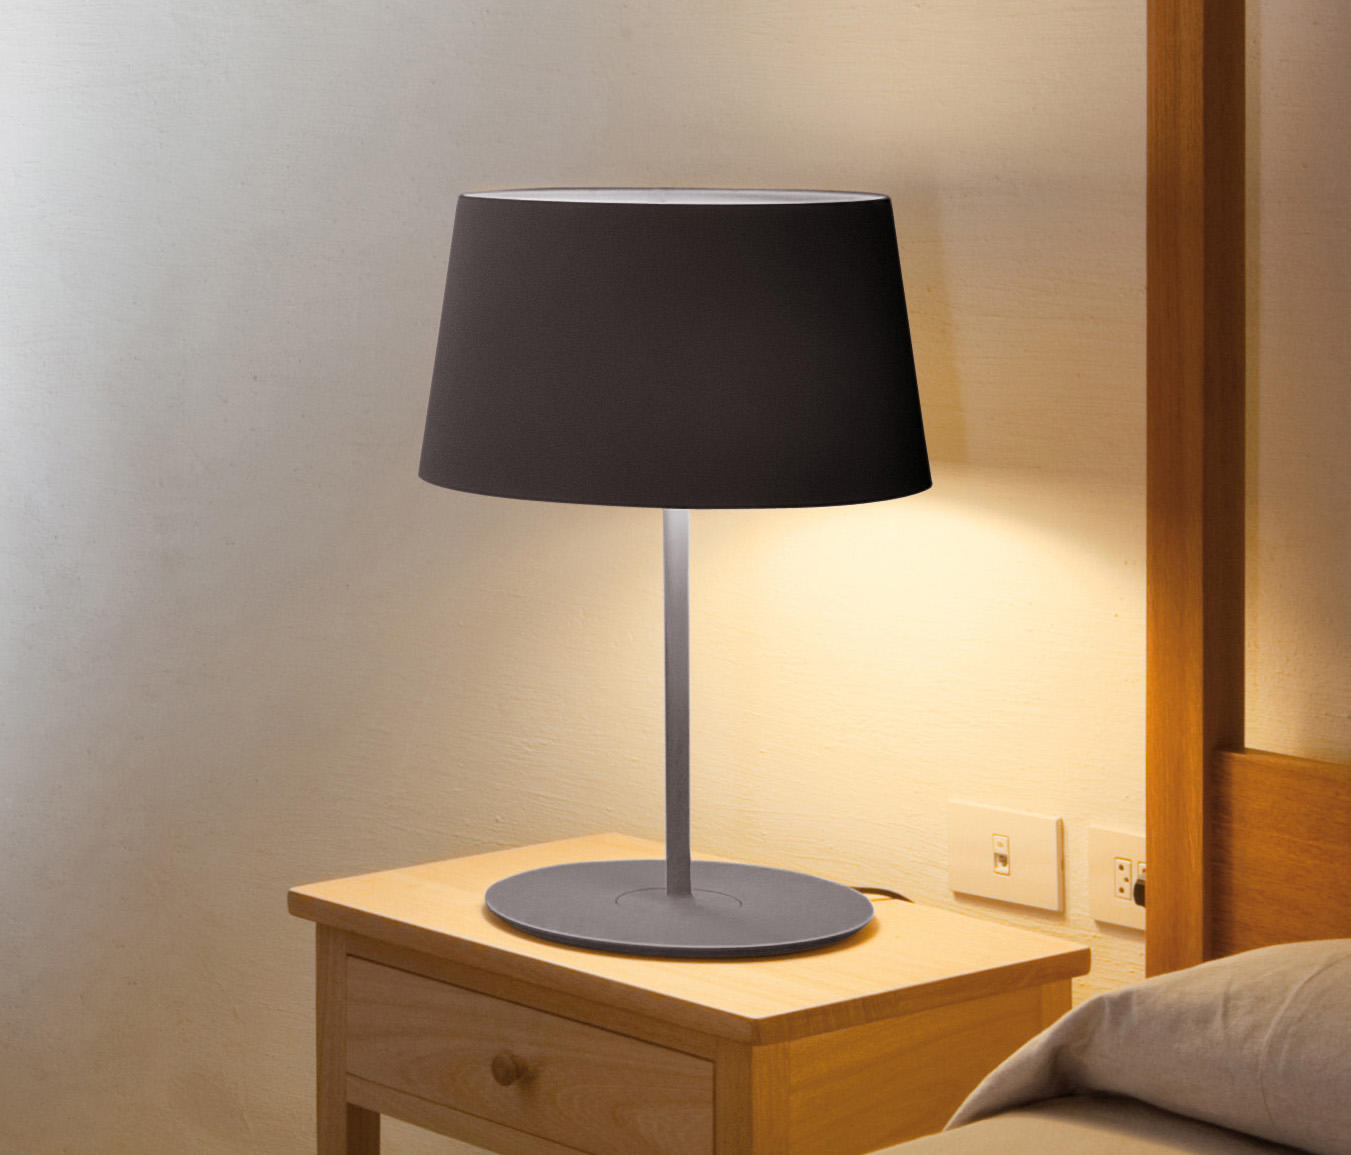 Lampe Table Warm 4896 Table Lamp - Table Lights From Vibia | Architonic